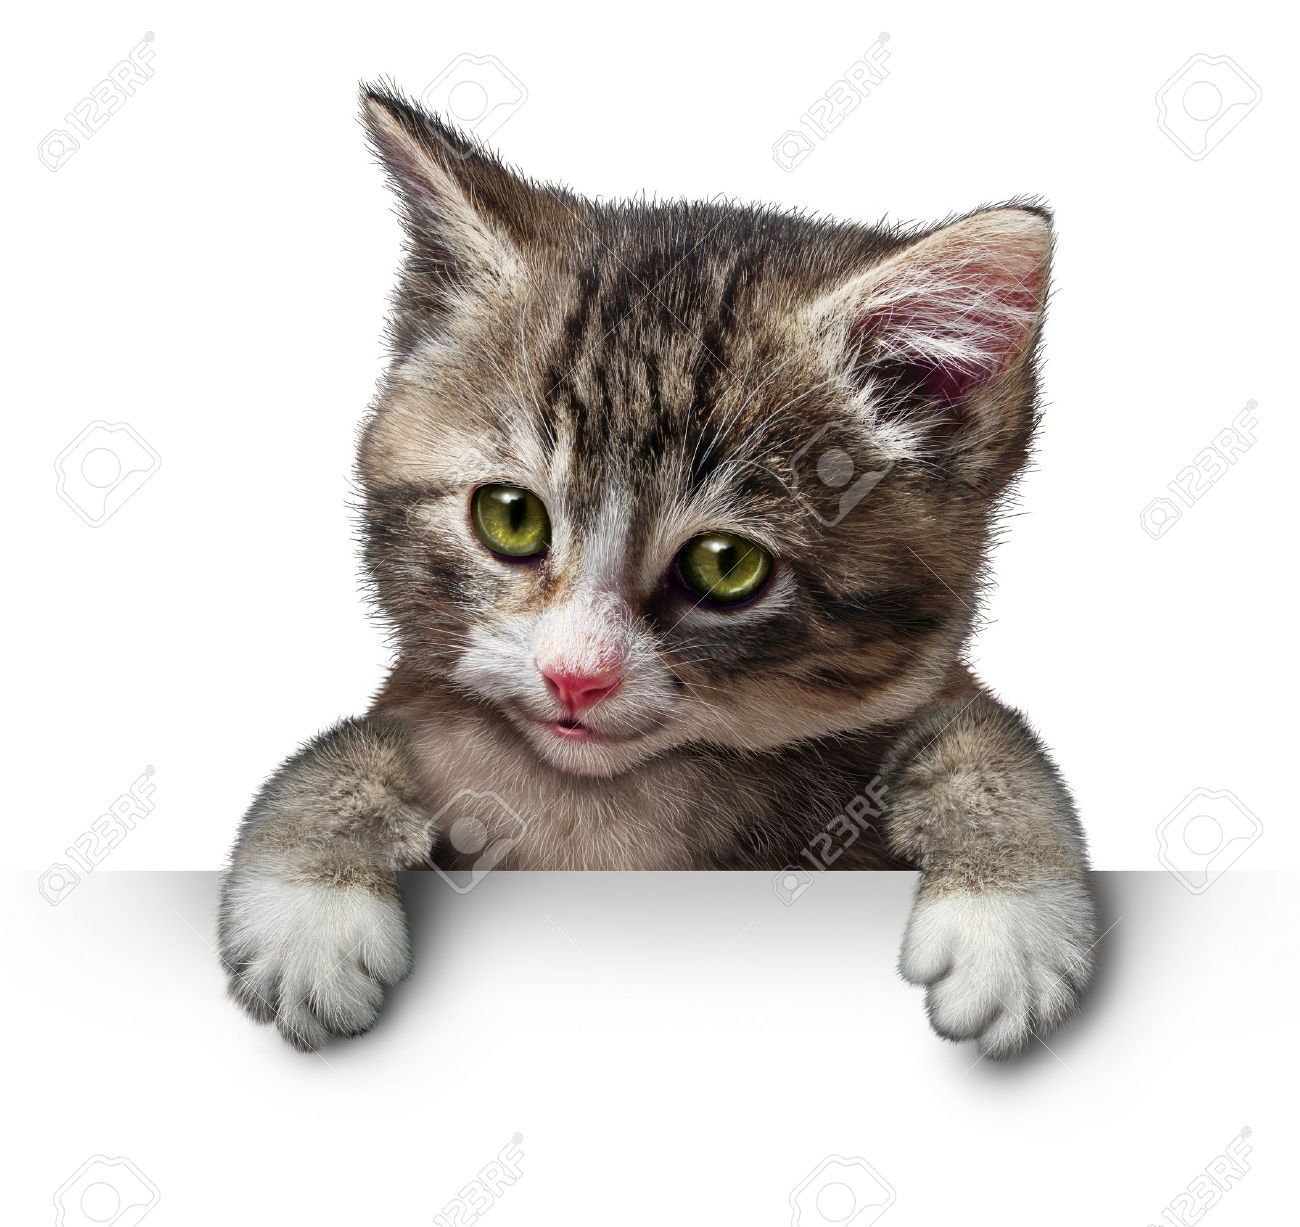 Cat or kitten holding a horizontal blank card sign as a cute feline with a smiling happy expression supporting and communicating a message pertaining to pet care on white. Stock Photo - 19698944